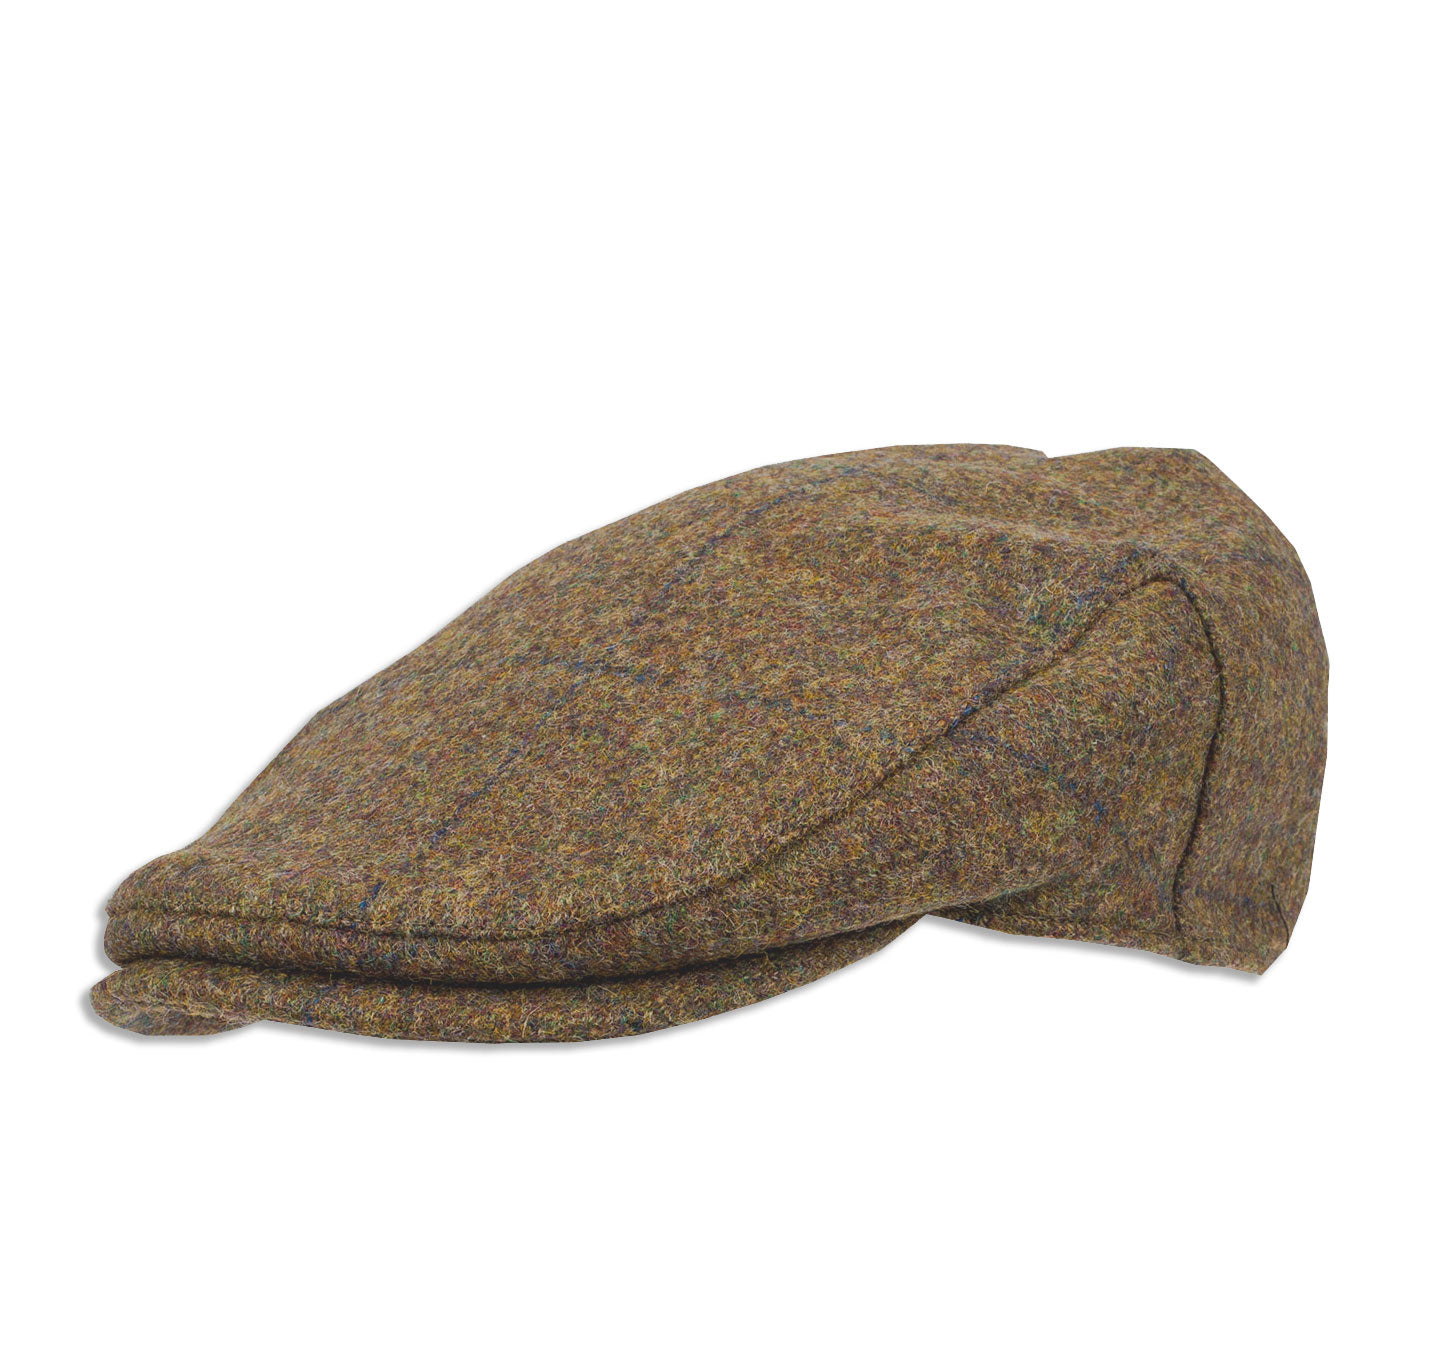 Manufactured by Heather Hats using finest Wool tweed sourced from Mallalieus of Delph - fine tweed producers.